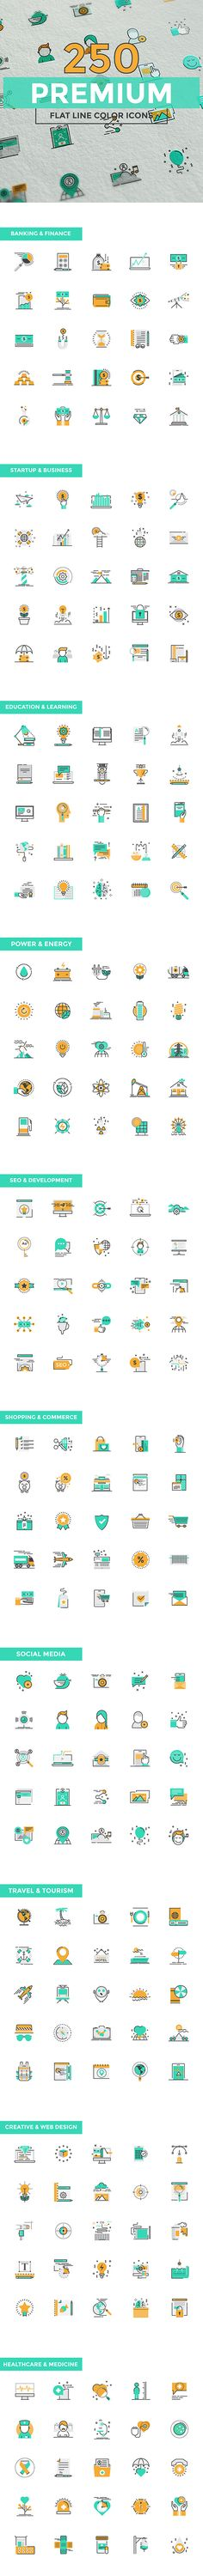 Set of modern color line design vector icons for mobile and web applications.